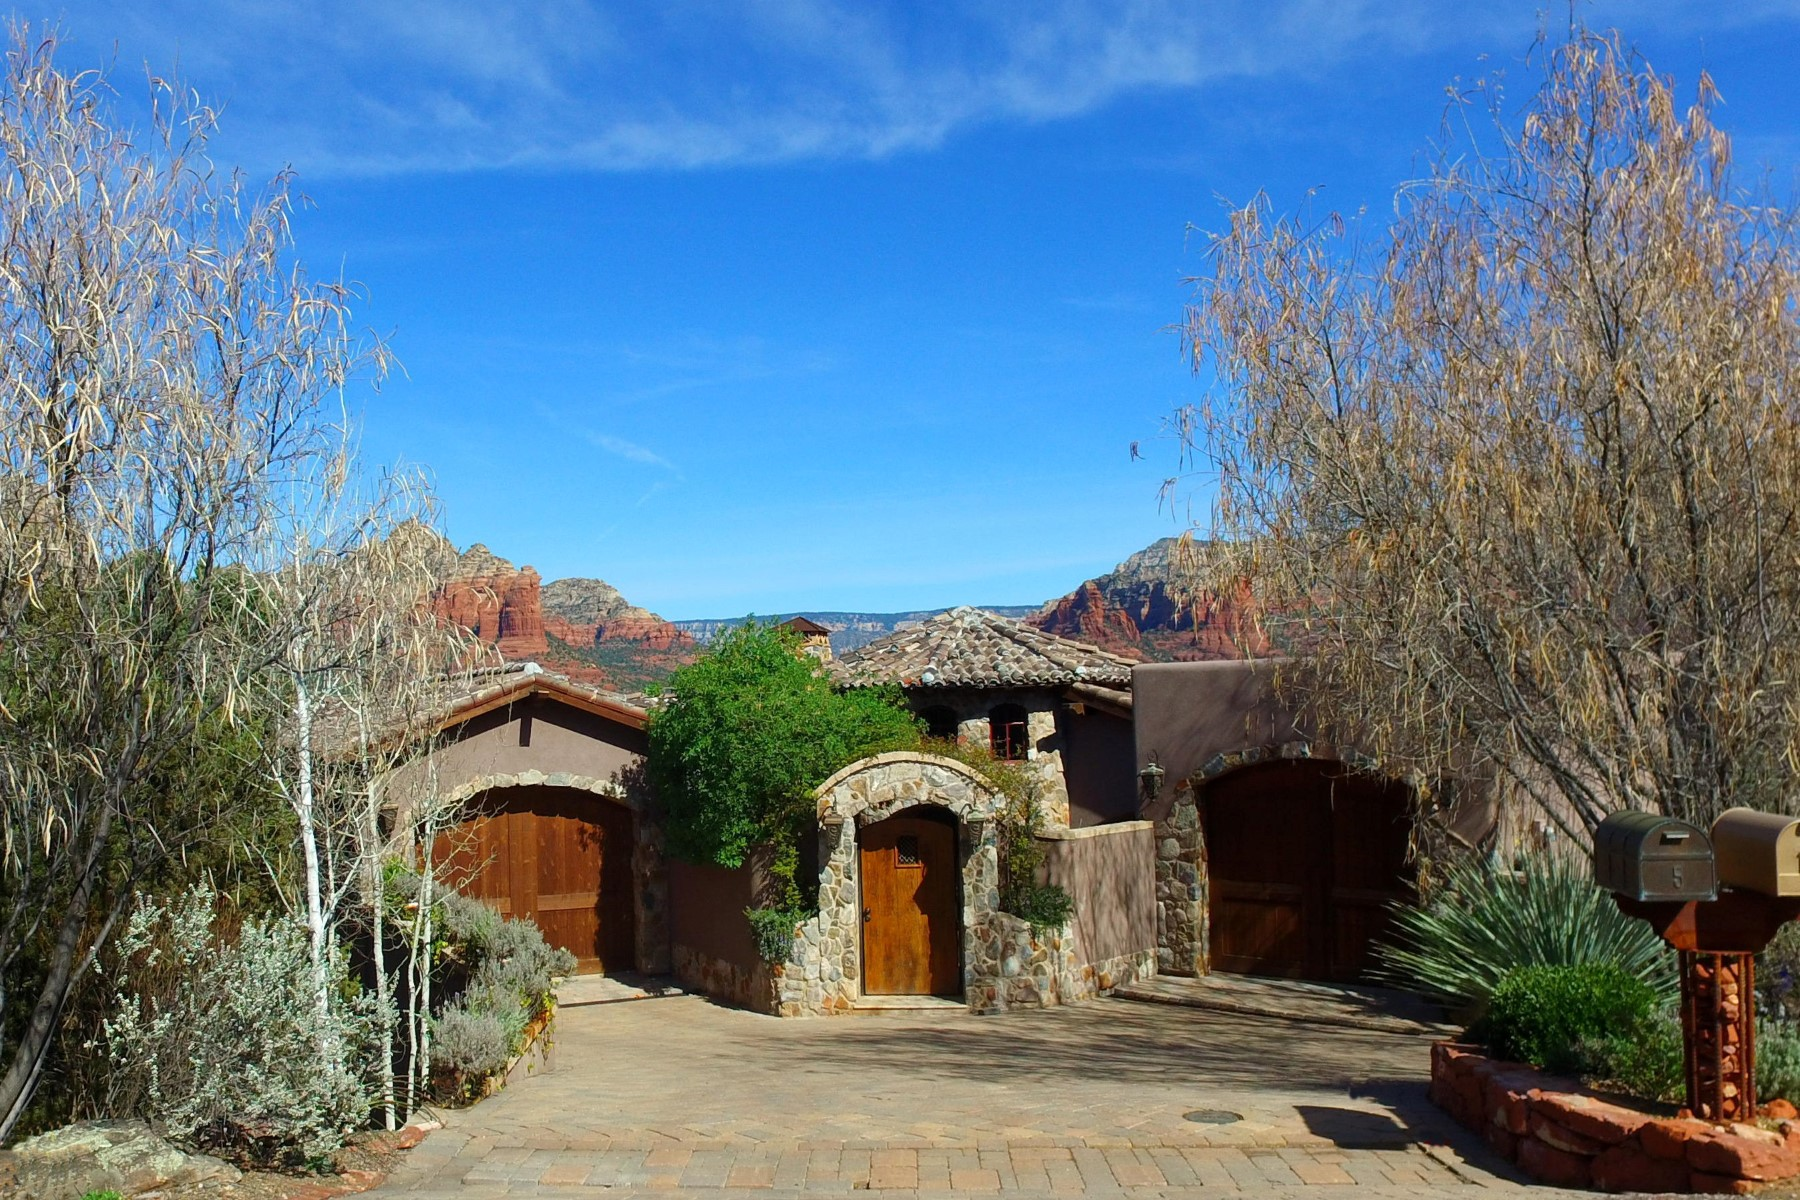 Single Family Home for Sale at Italian Villa style Sedona home 5 Mingus Mountain Rd Sedona, Arizona 86336 United States